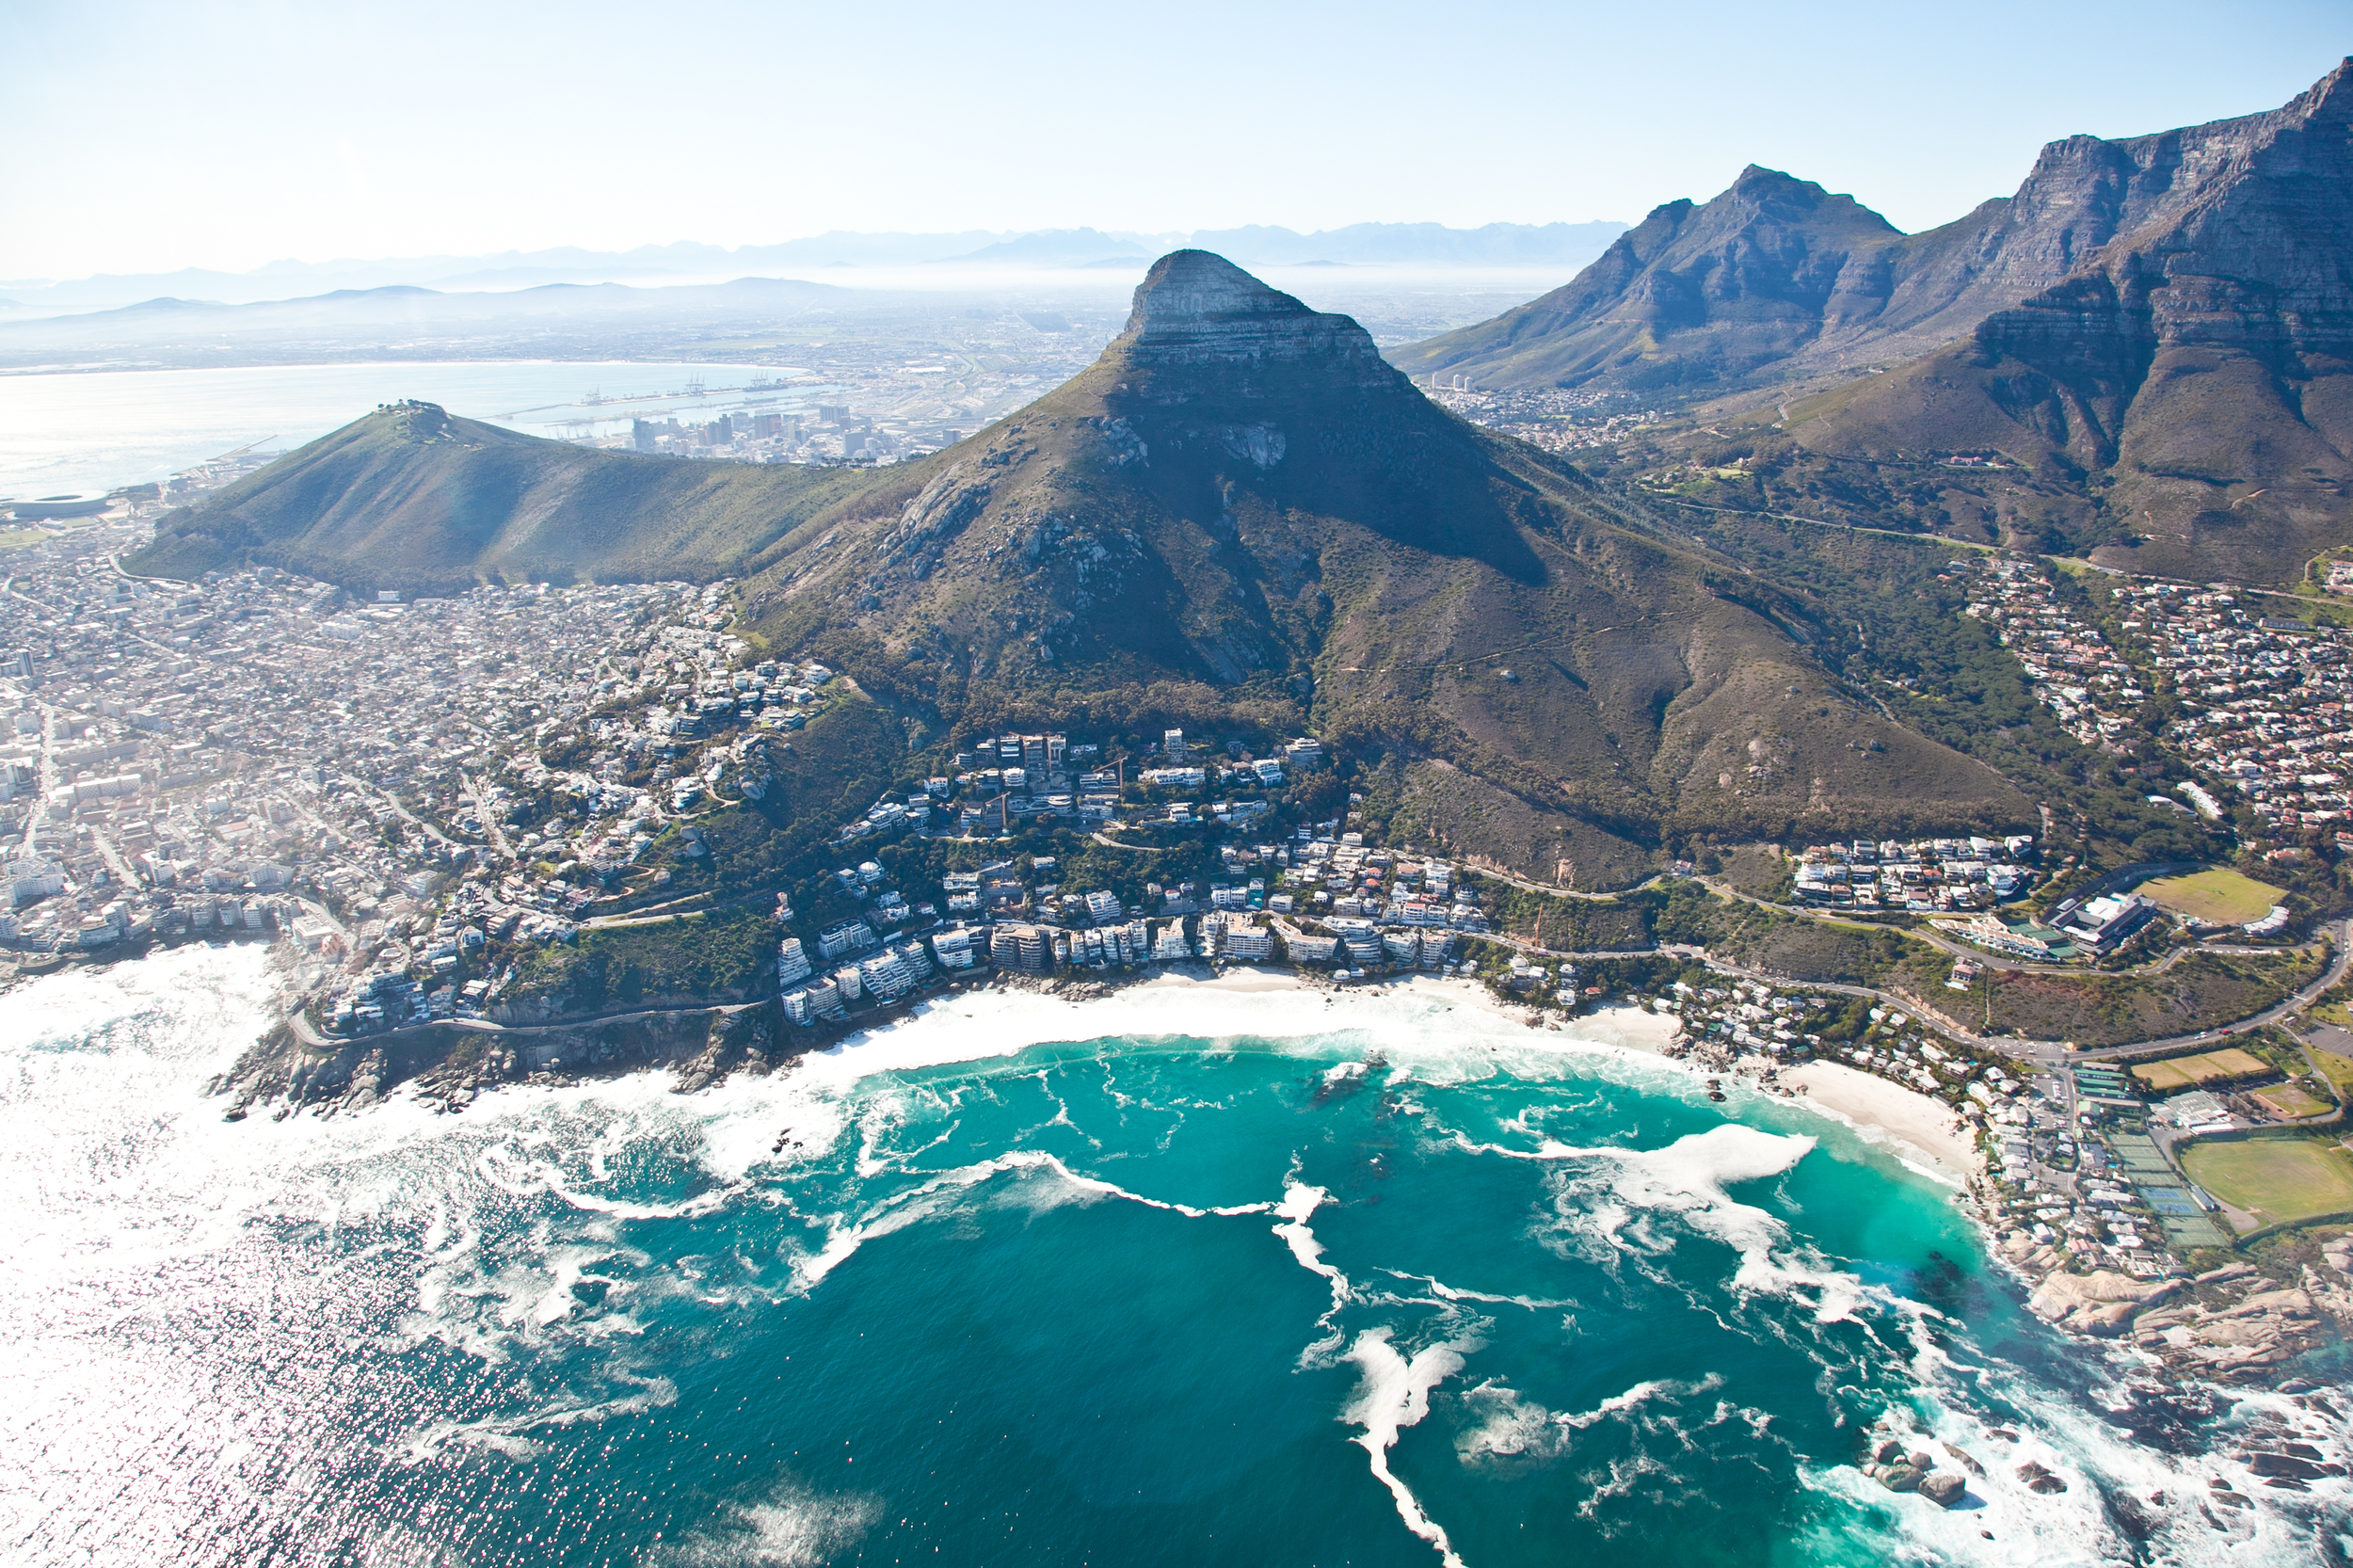 IMG_4815-cape-town-south-africa-helicopter-ride-trisa-taro.jpg